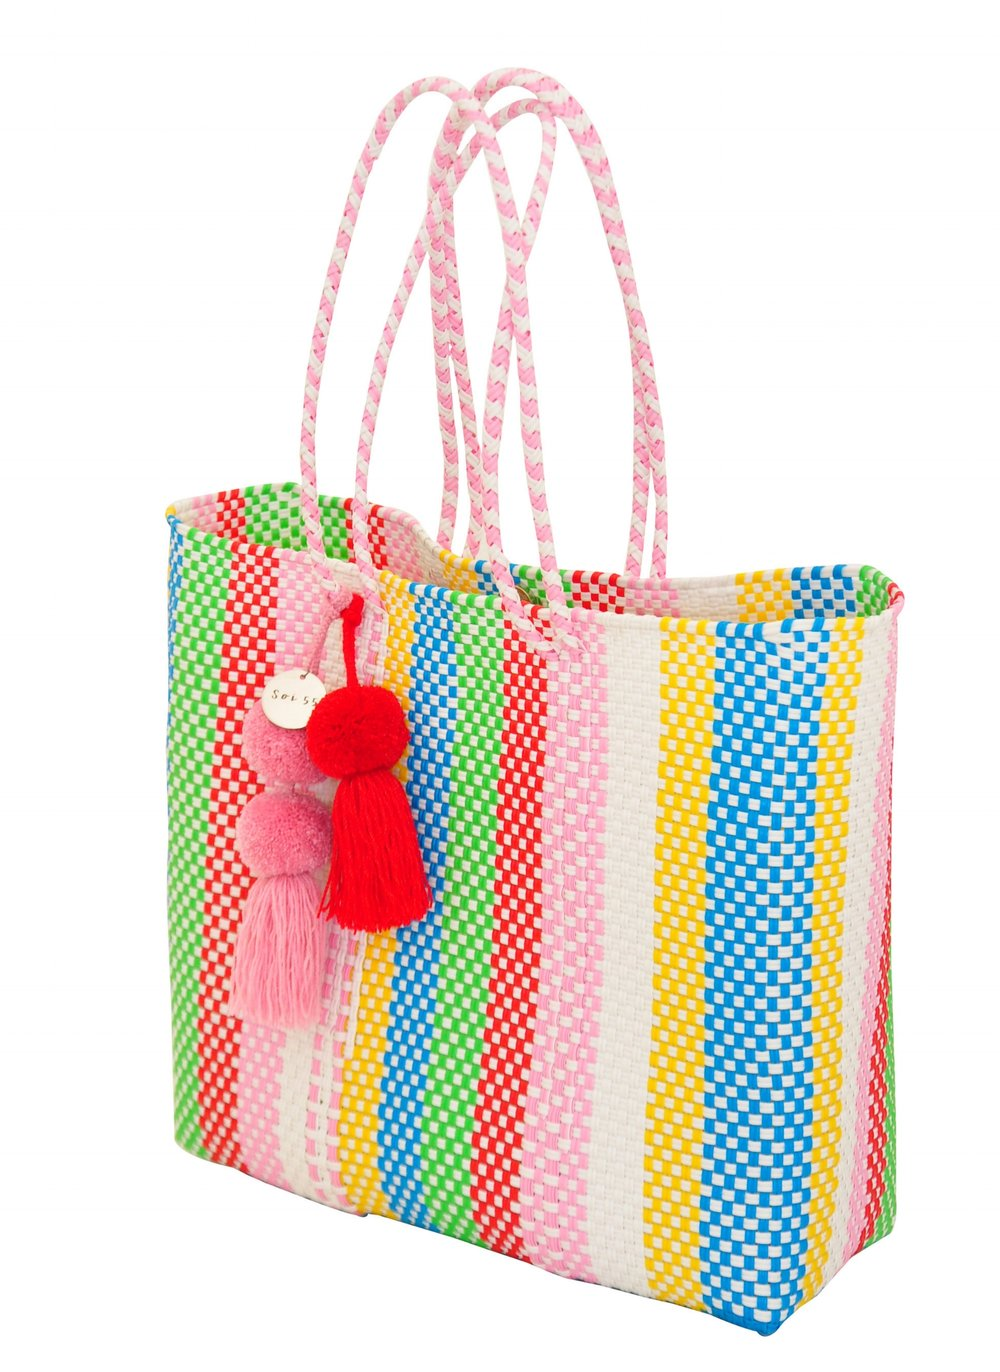 Soi 55 rainbow tote bag / Rainbow stripe trend : 5 rainbow fashion finds